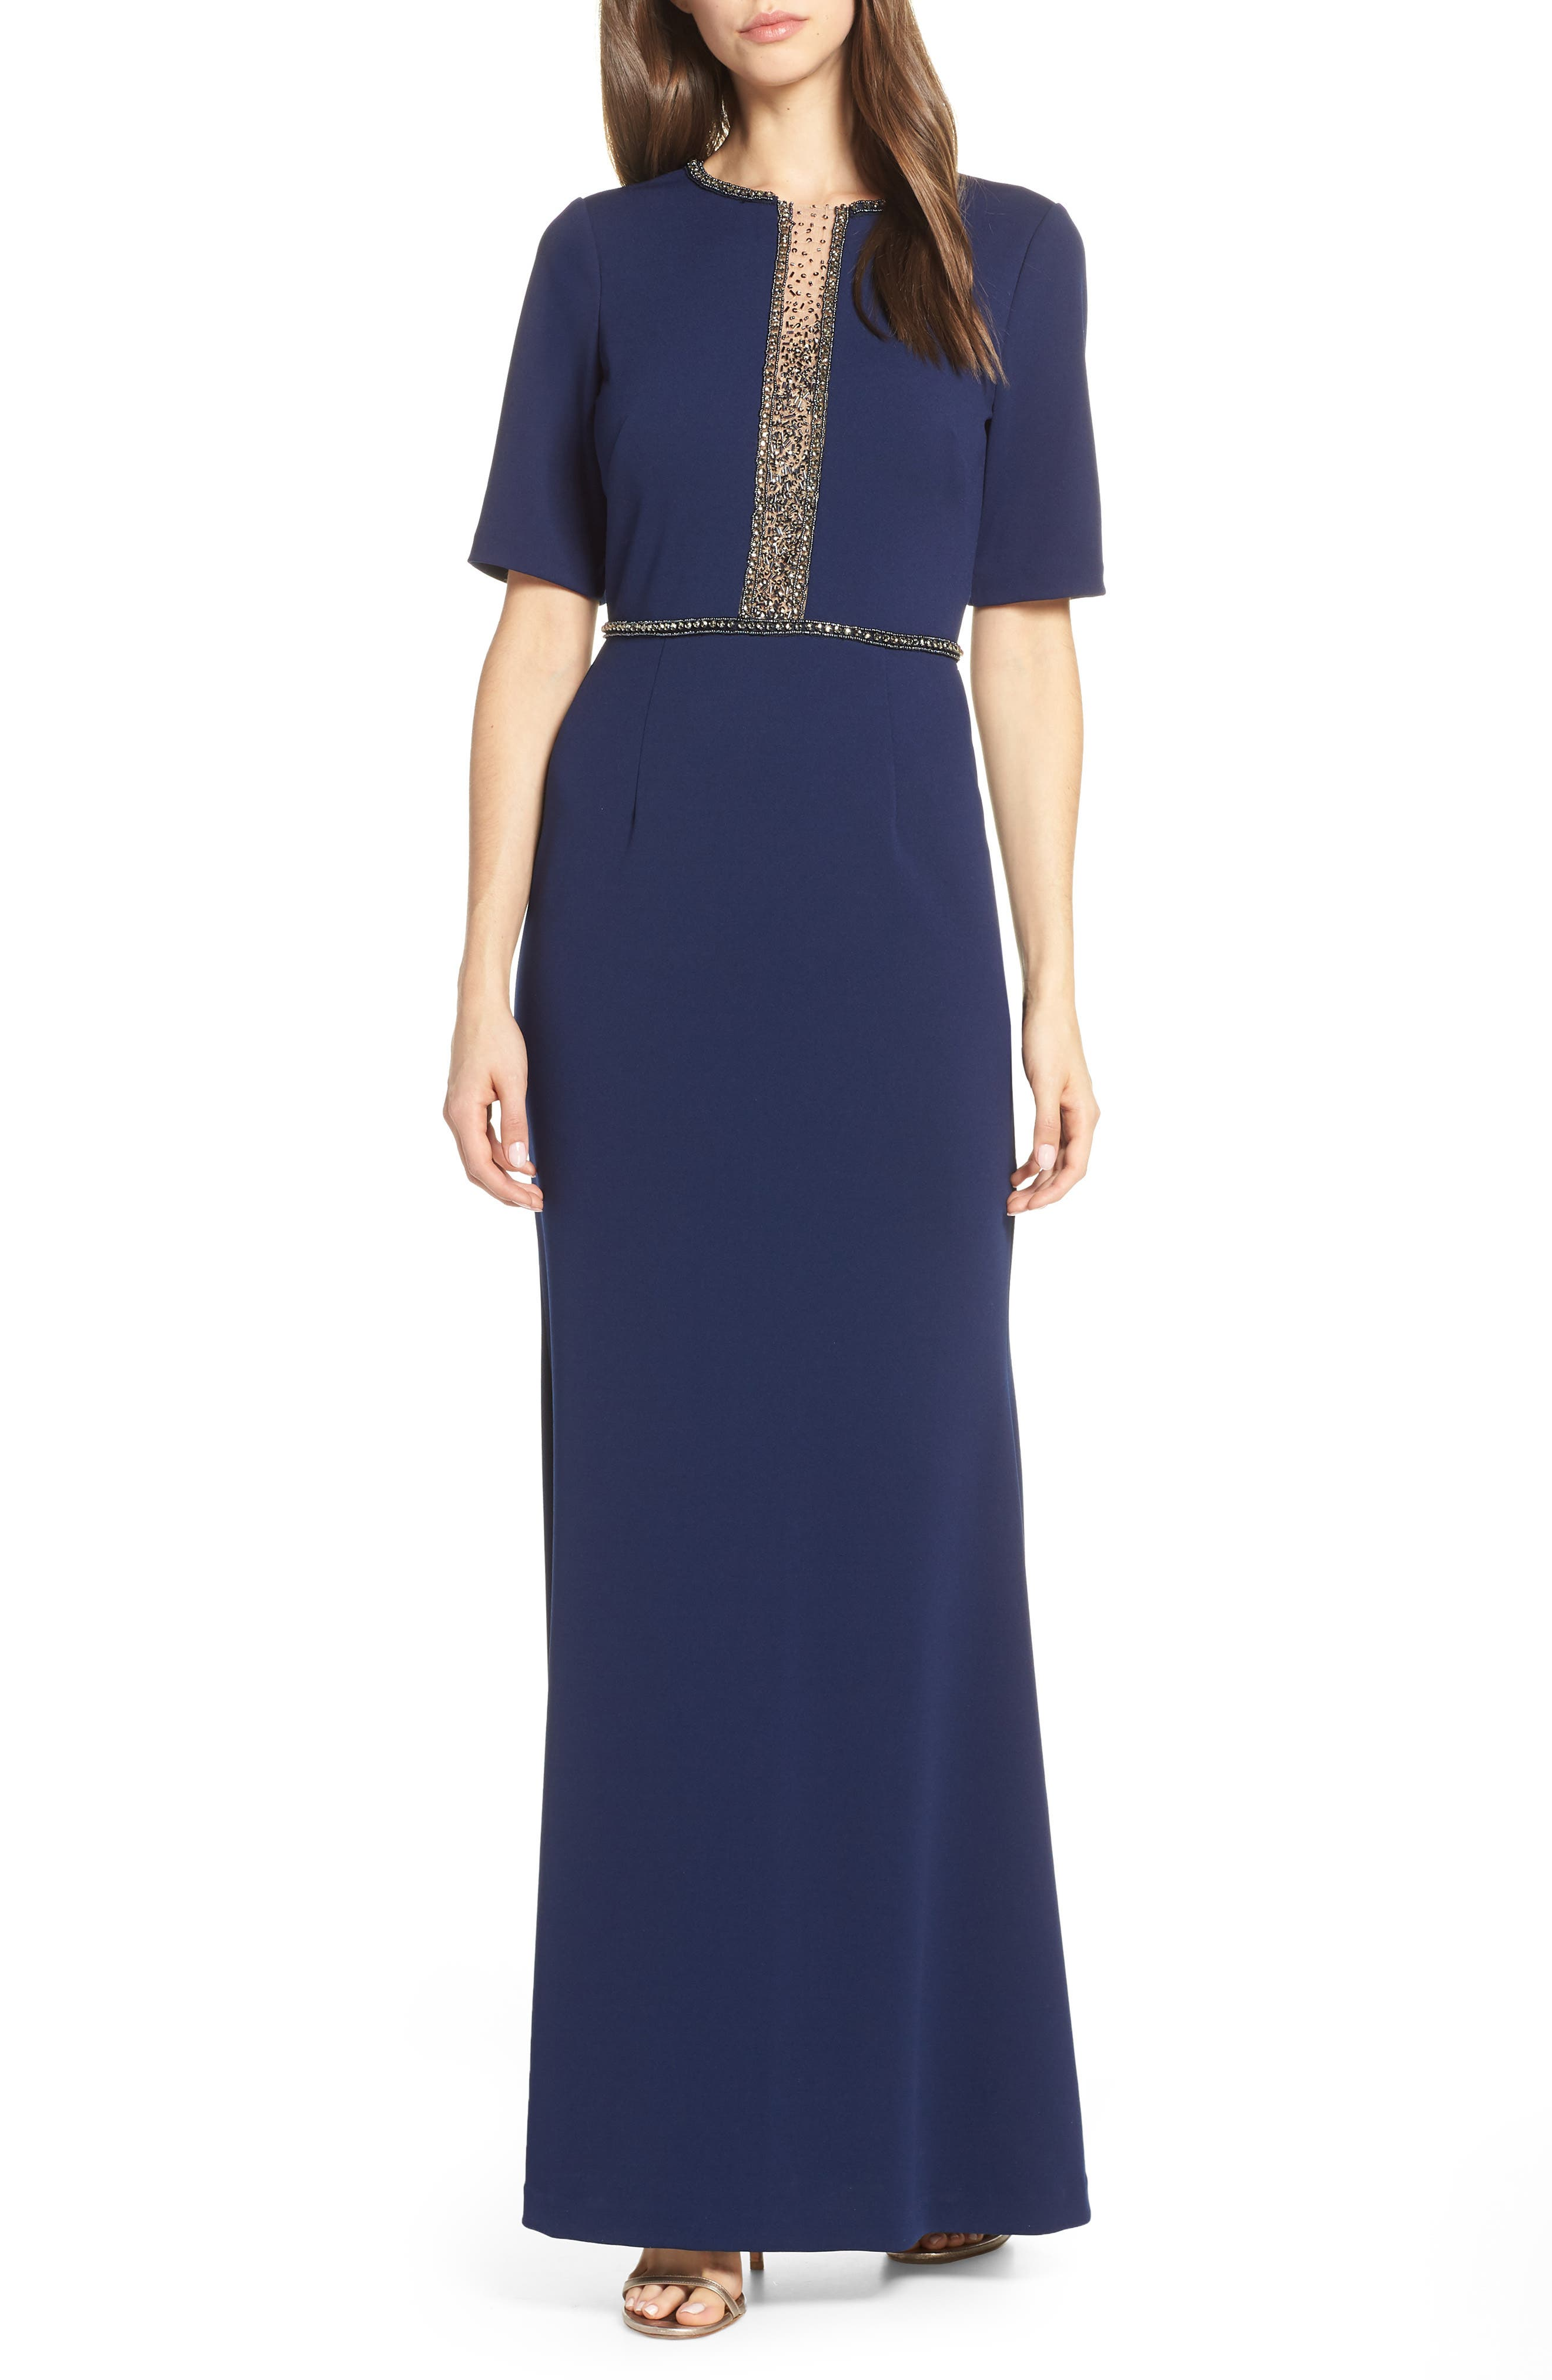 Adrianna Papell Beaded Crepe Evening Dress, Blue